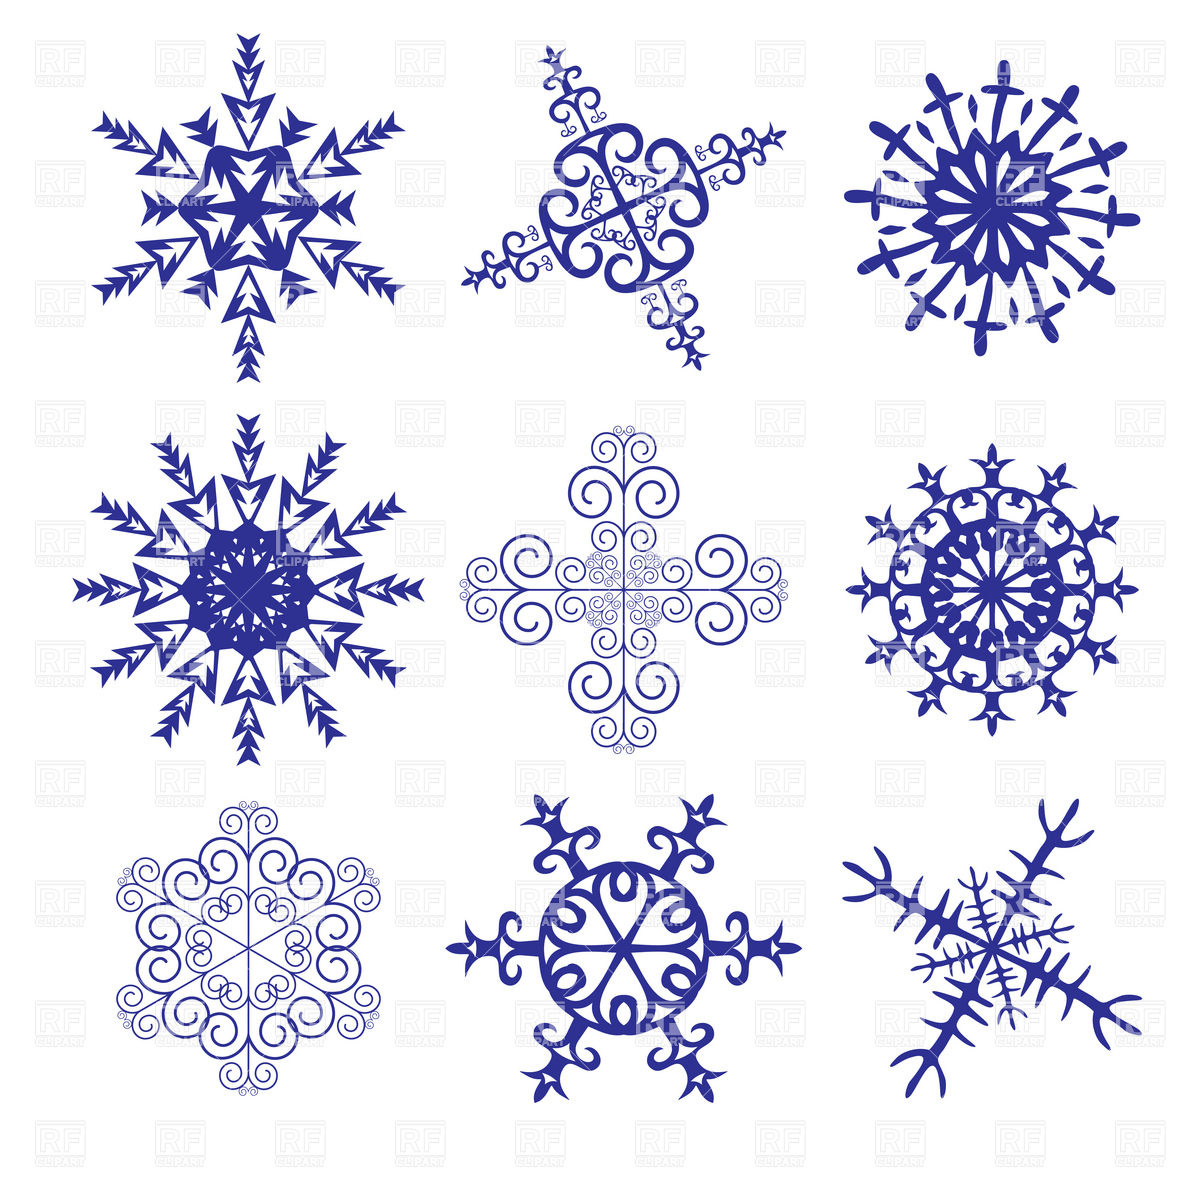 1200x1200 Blue Ornate Snowflakes Patterns Vector Image Vector Artwork Of